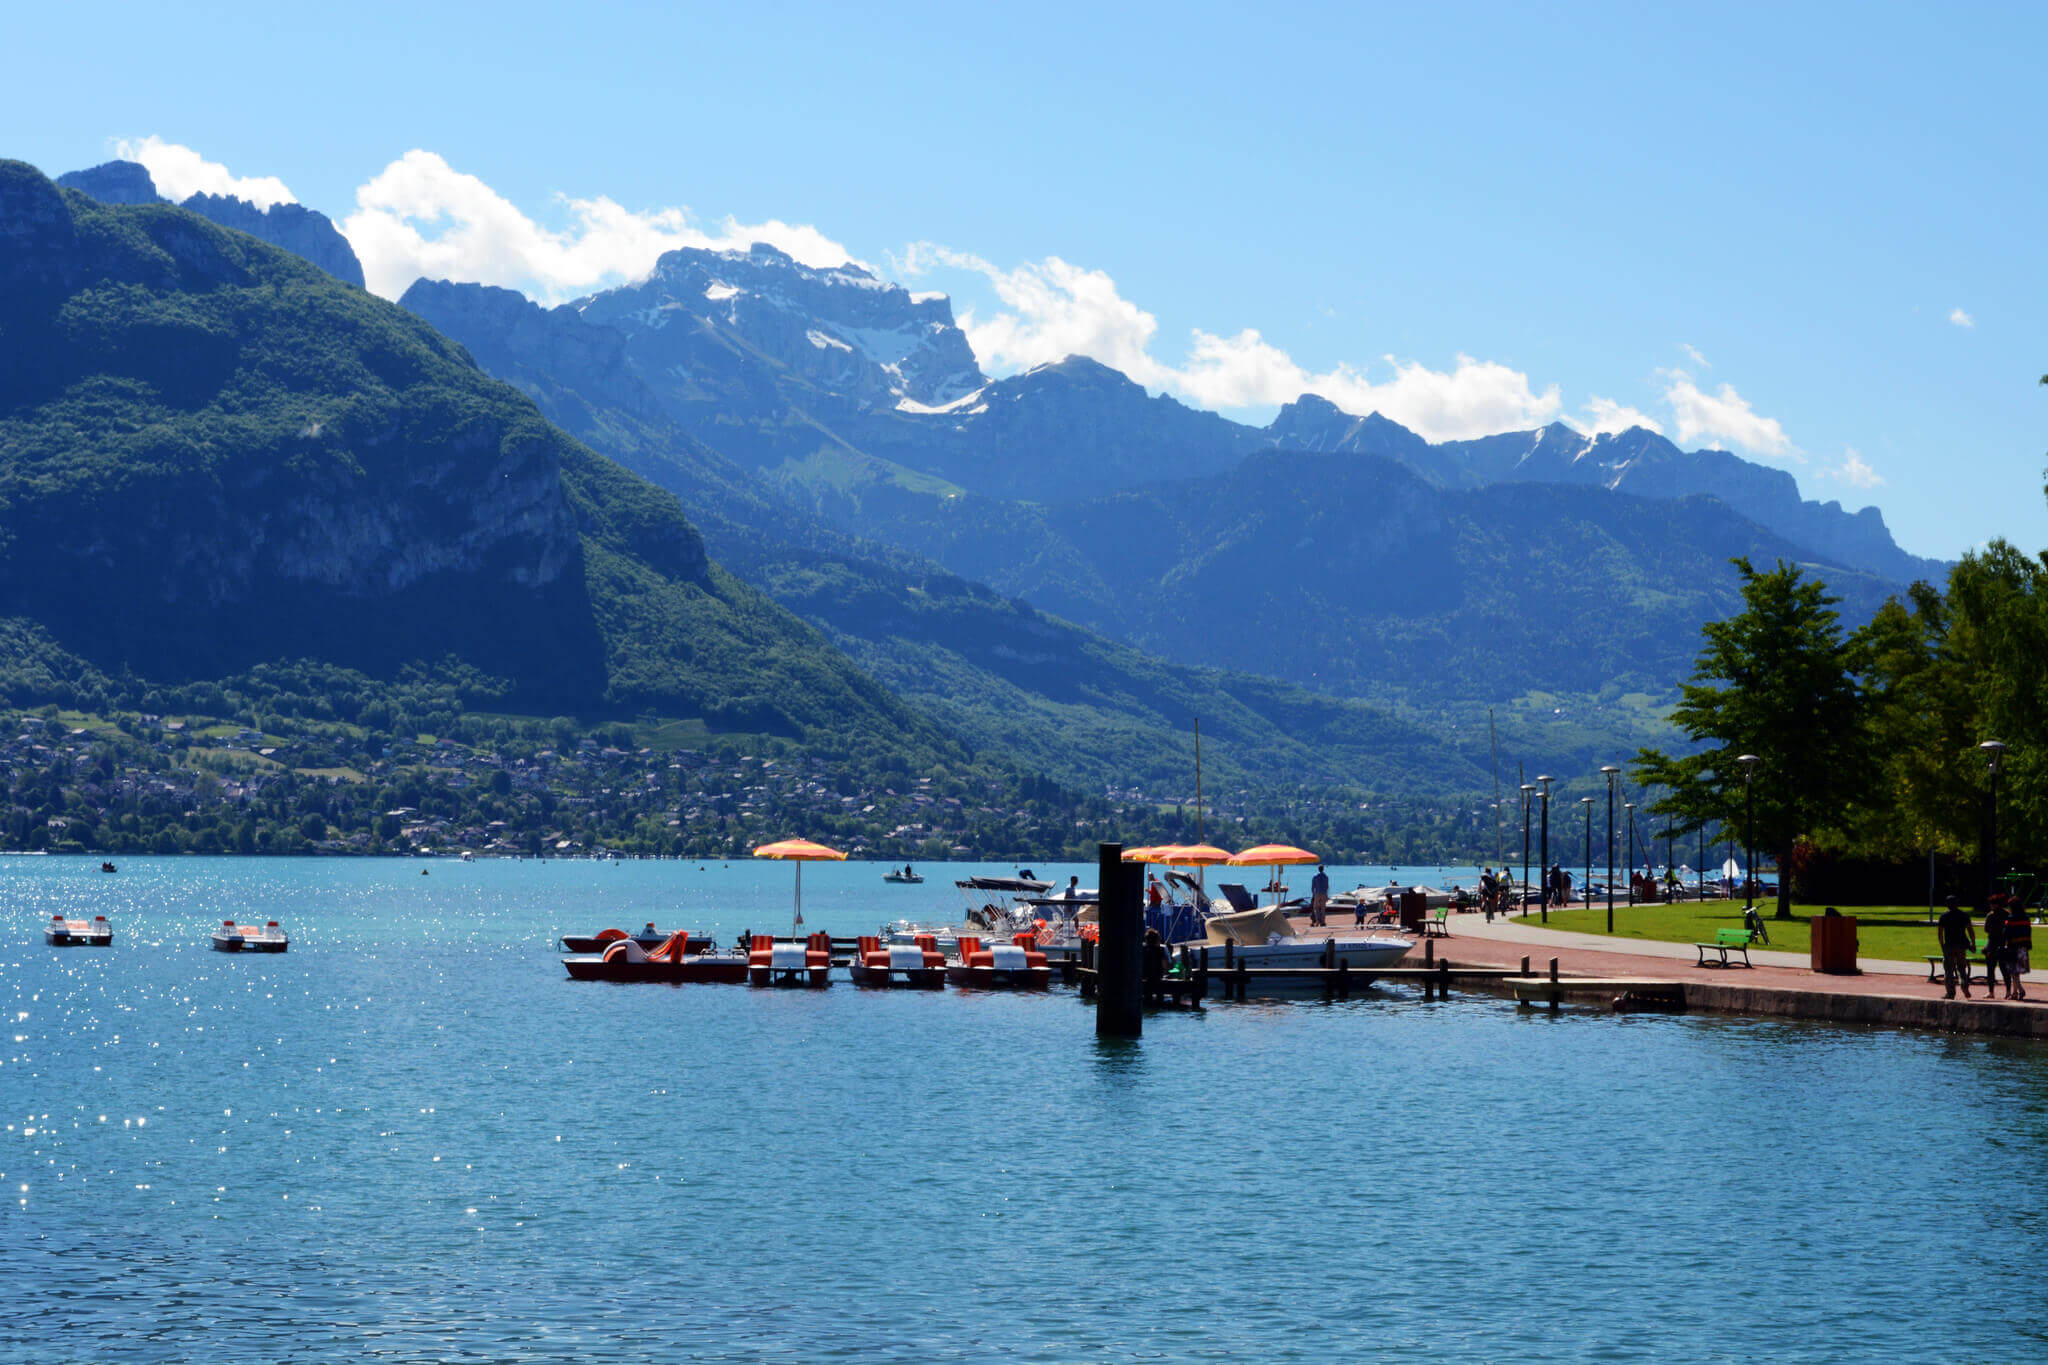 Lake Annecy, France. Taken by Pug Girl via Flickr.